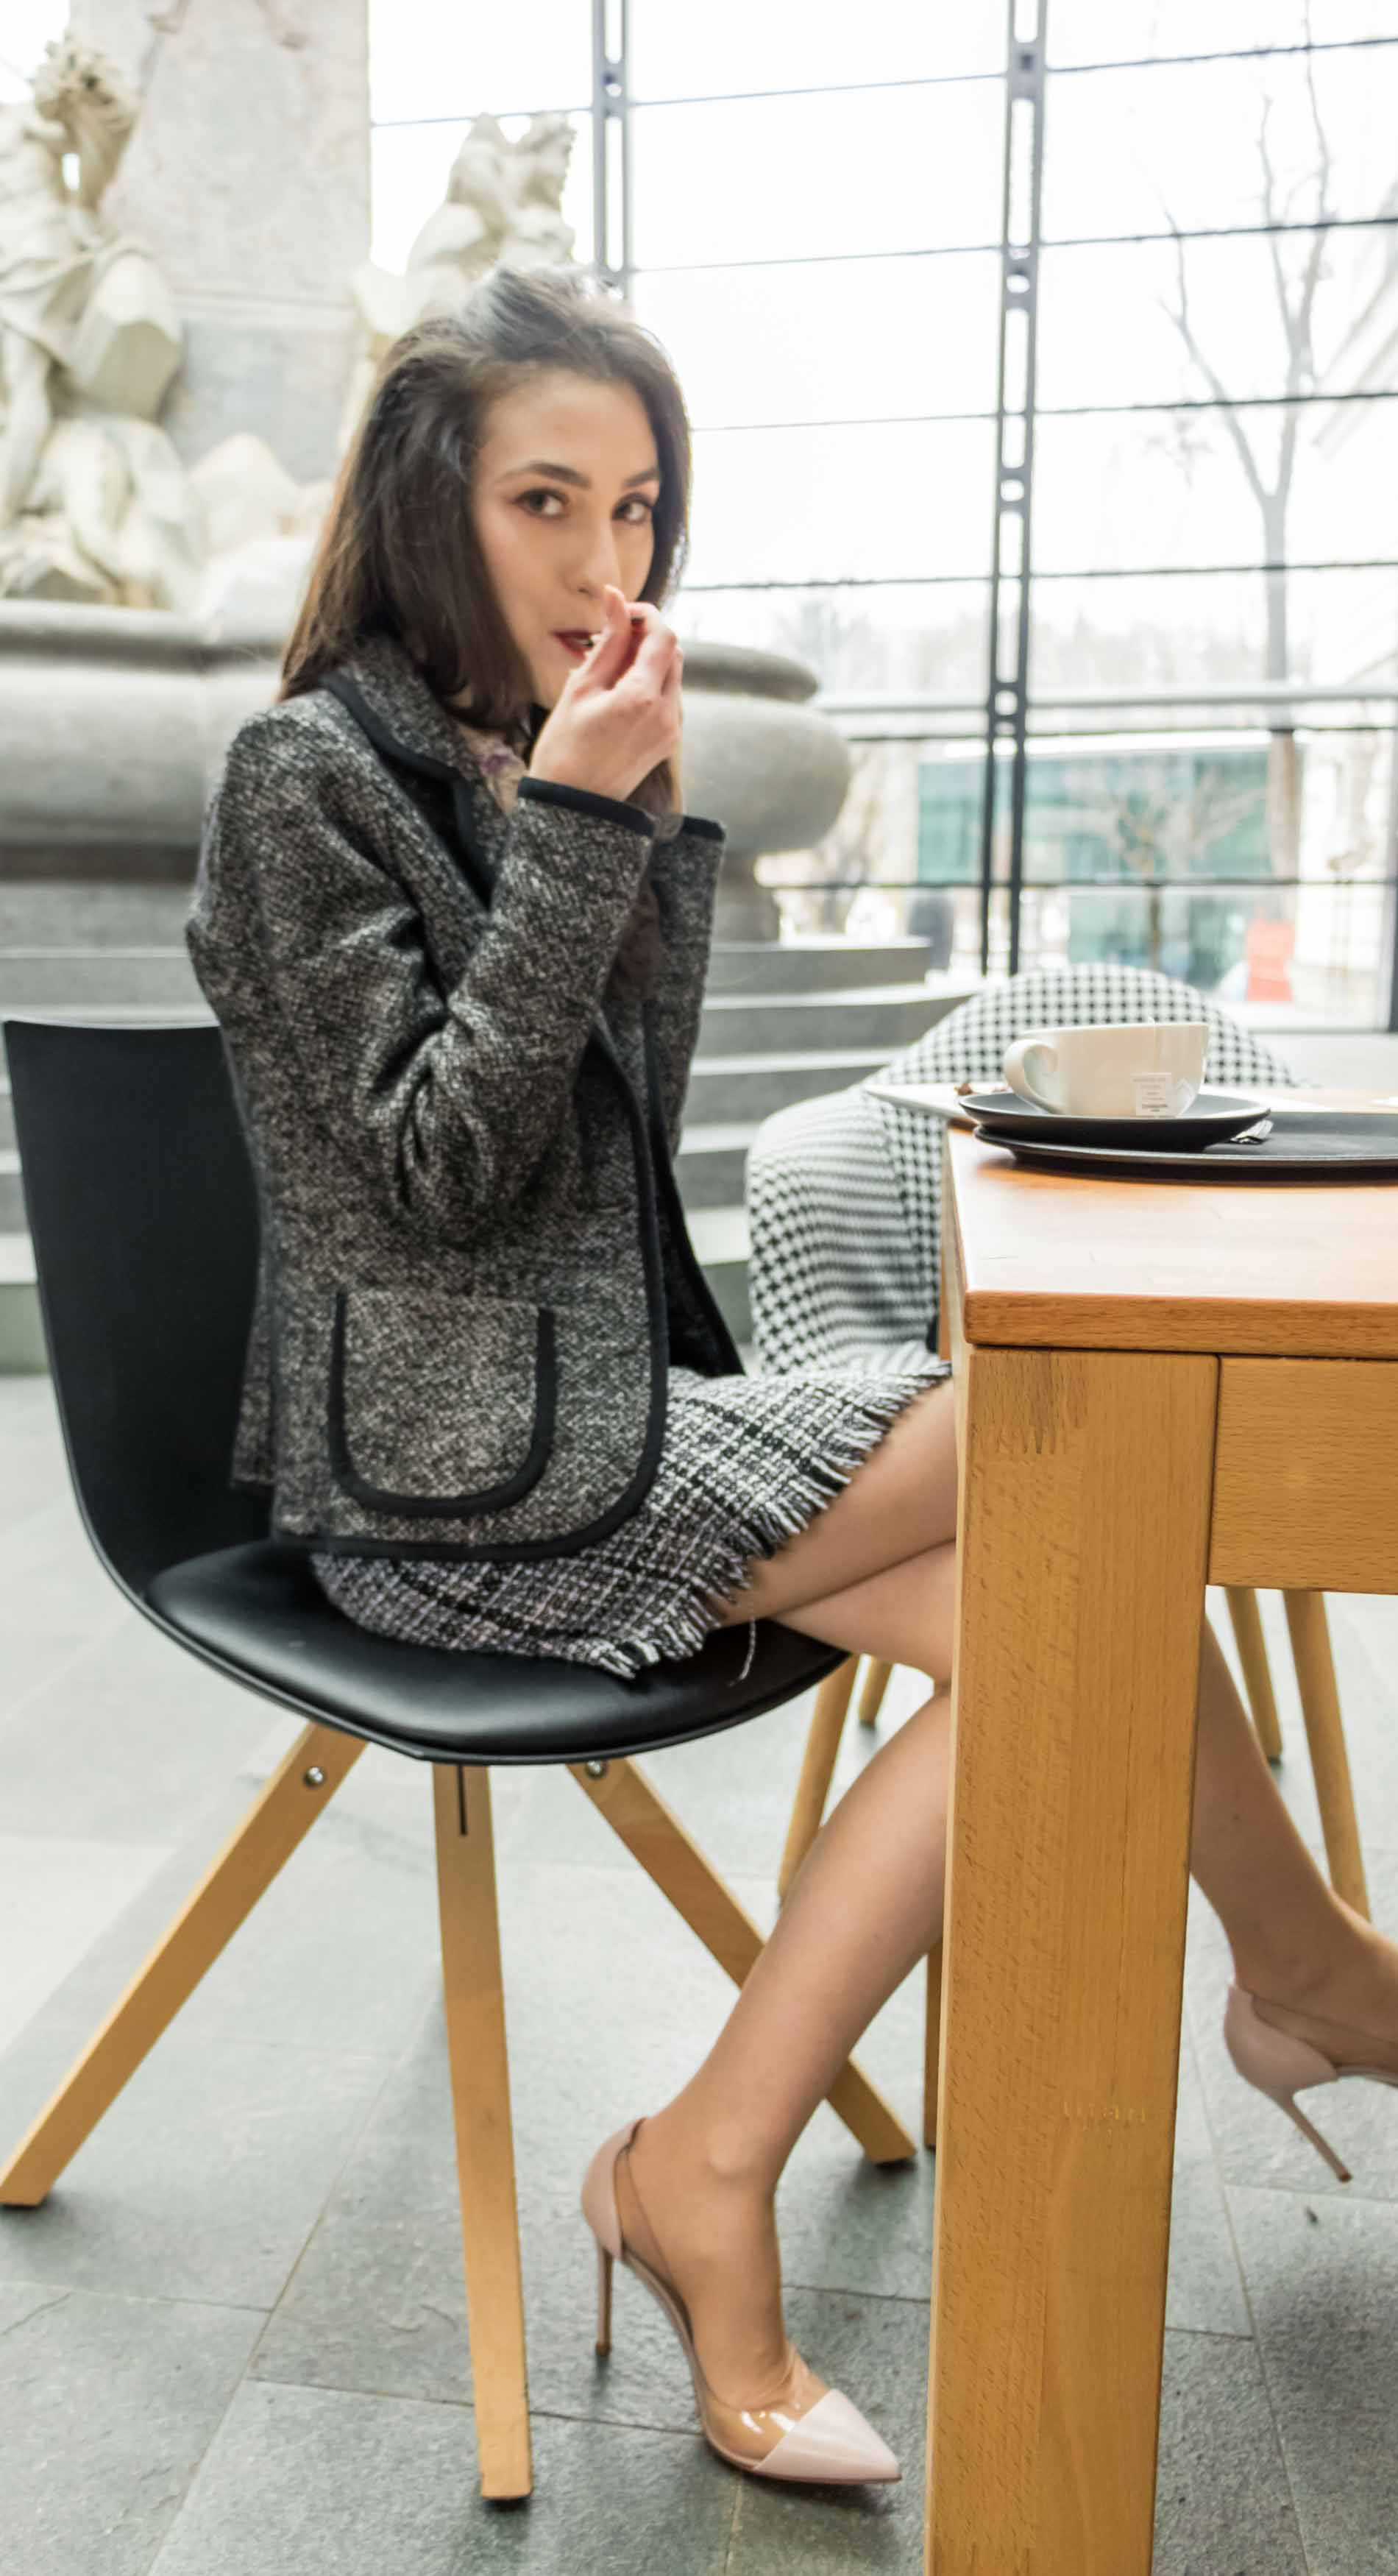 Fashion Blogger Veronika Lipar of Brunette from Wall Street wearing blush Gianvito Rossi Plexi 100 leather and PVC pump shoes, tweed plaid mini skirt from Storets, black and white Marella tweed jacket while eating a cake